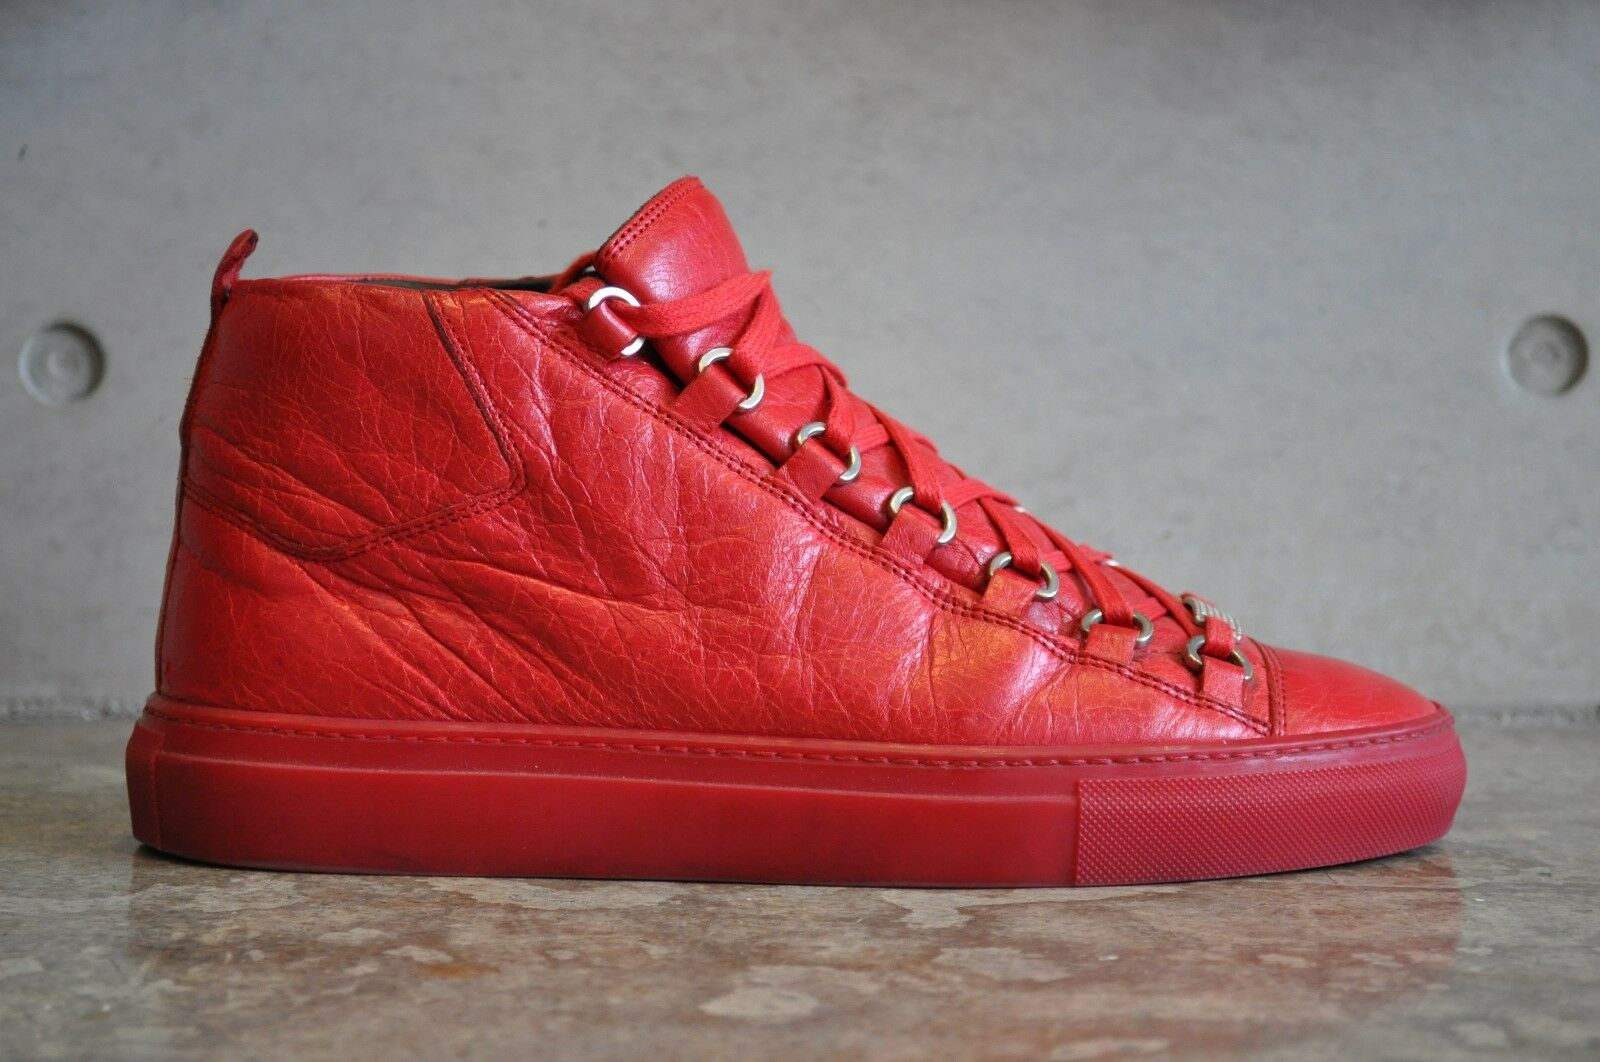 Balenciaga Arena Creased Leder High Top Sneakers Sneakers Sneakers - ROT 5 UK 39 EUR dc6da9